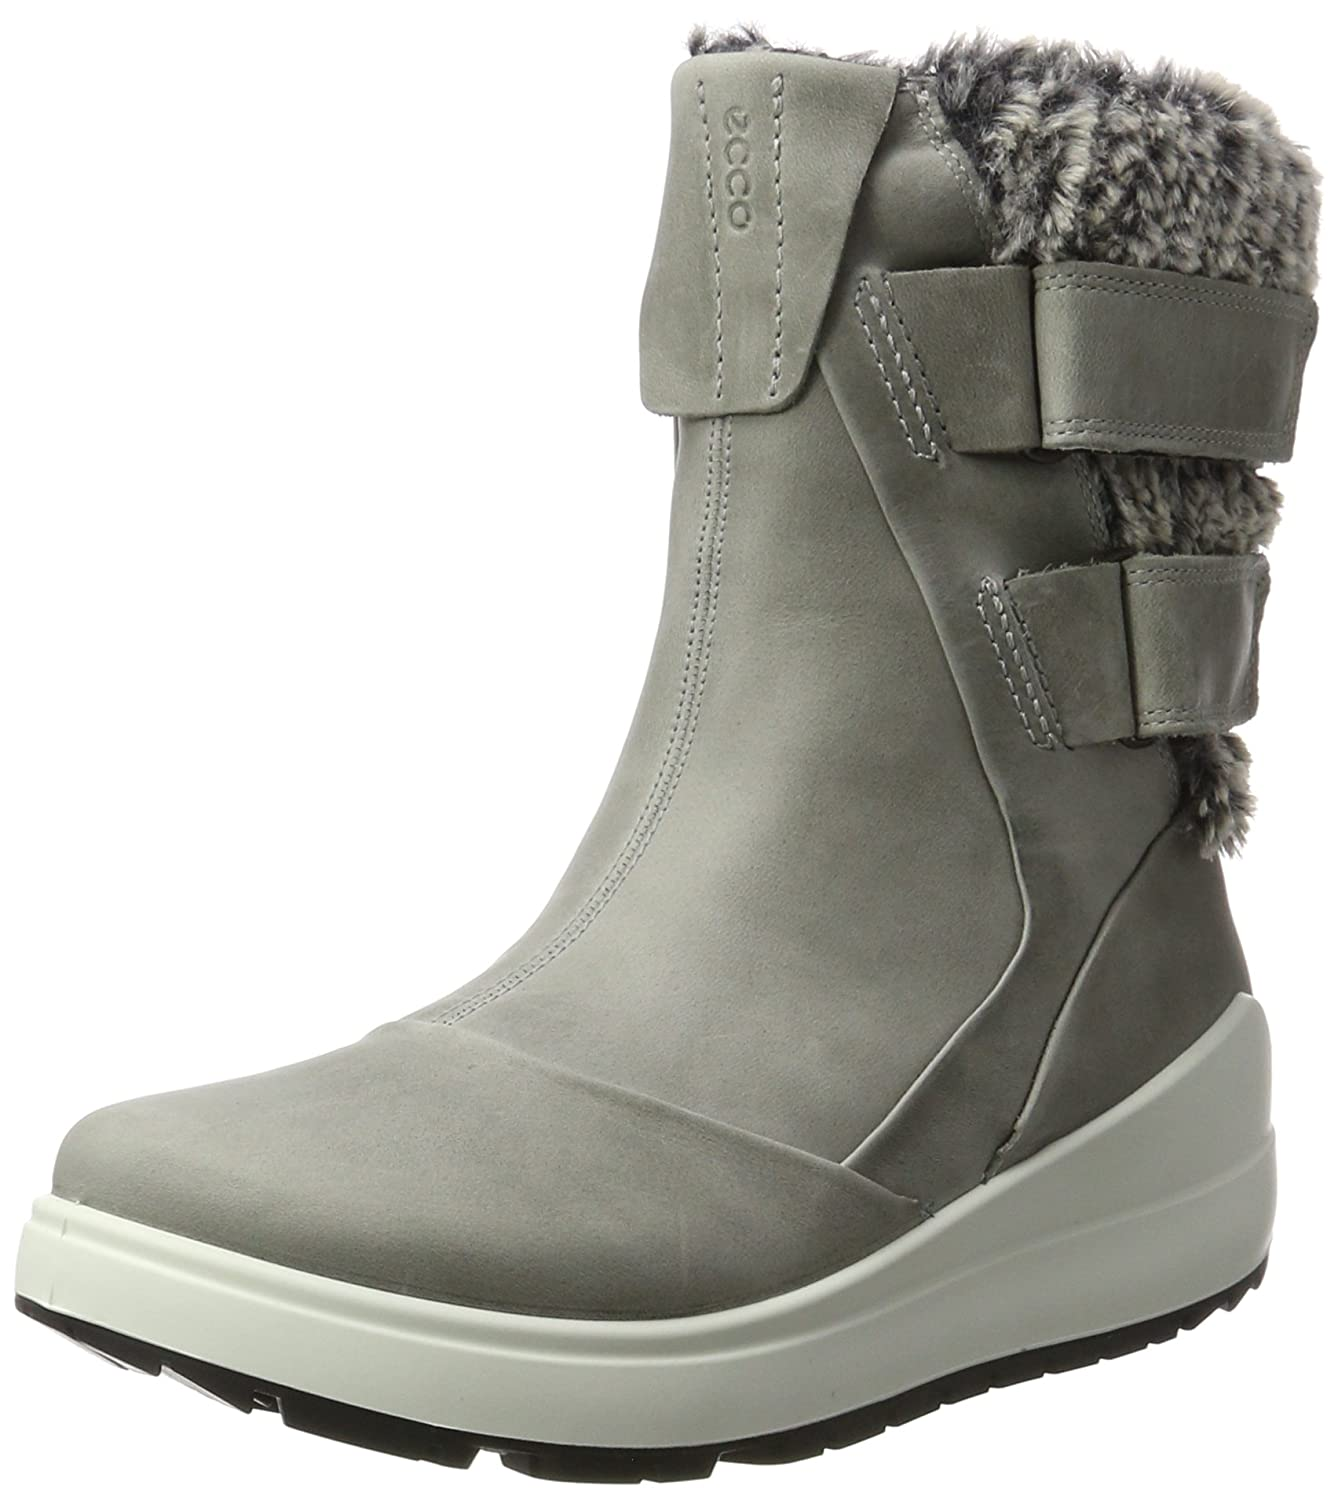 ECCO Shoes Women's Noyce Mid Snow Boots 834613